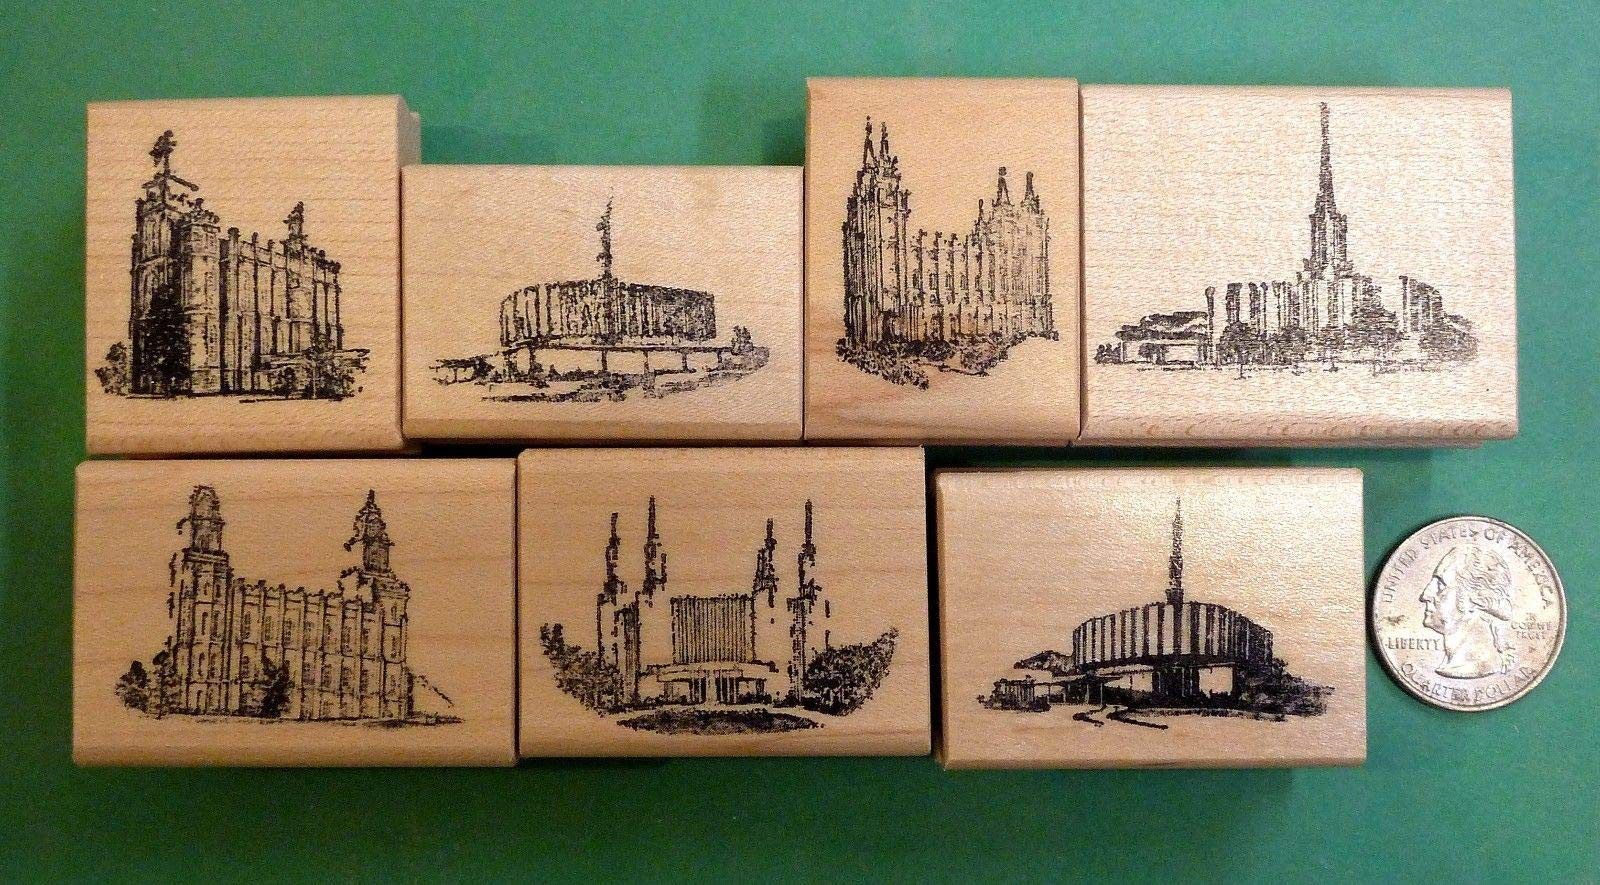 Quality Custom Rubber Stamps Mormon/LDS Temples, Set of (7), Wood Mounted Rubber Stamps Carved Wooden Stamps by Wood Stamp